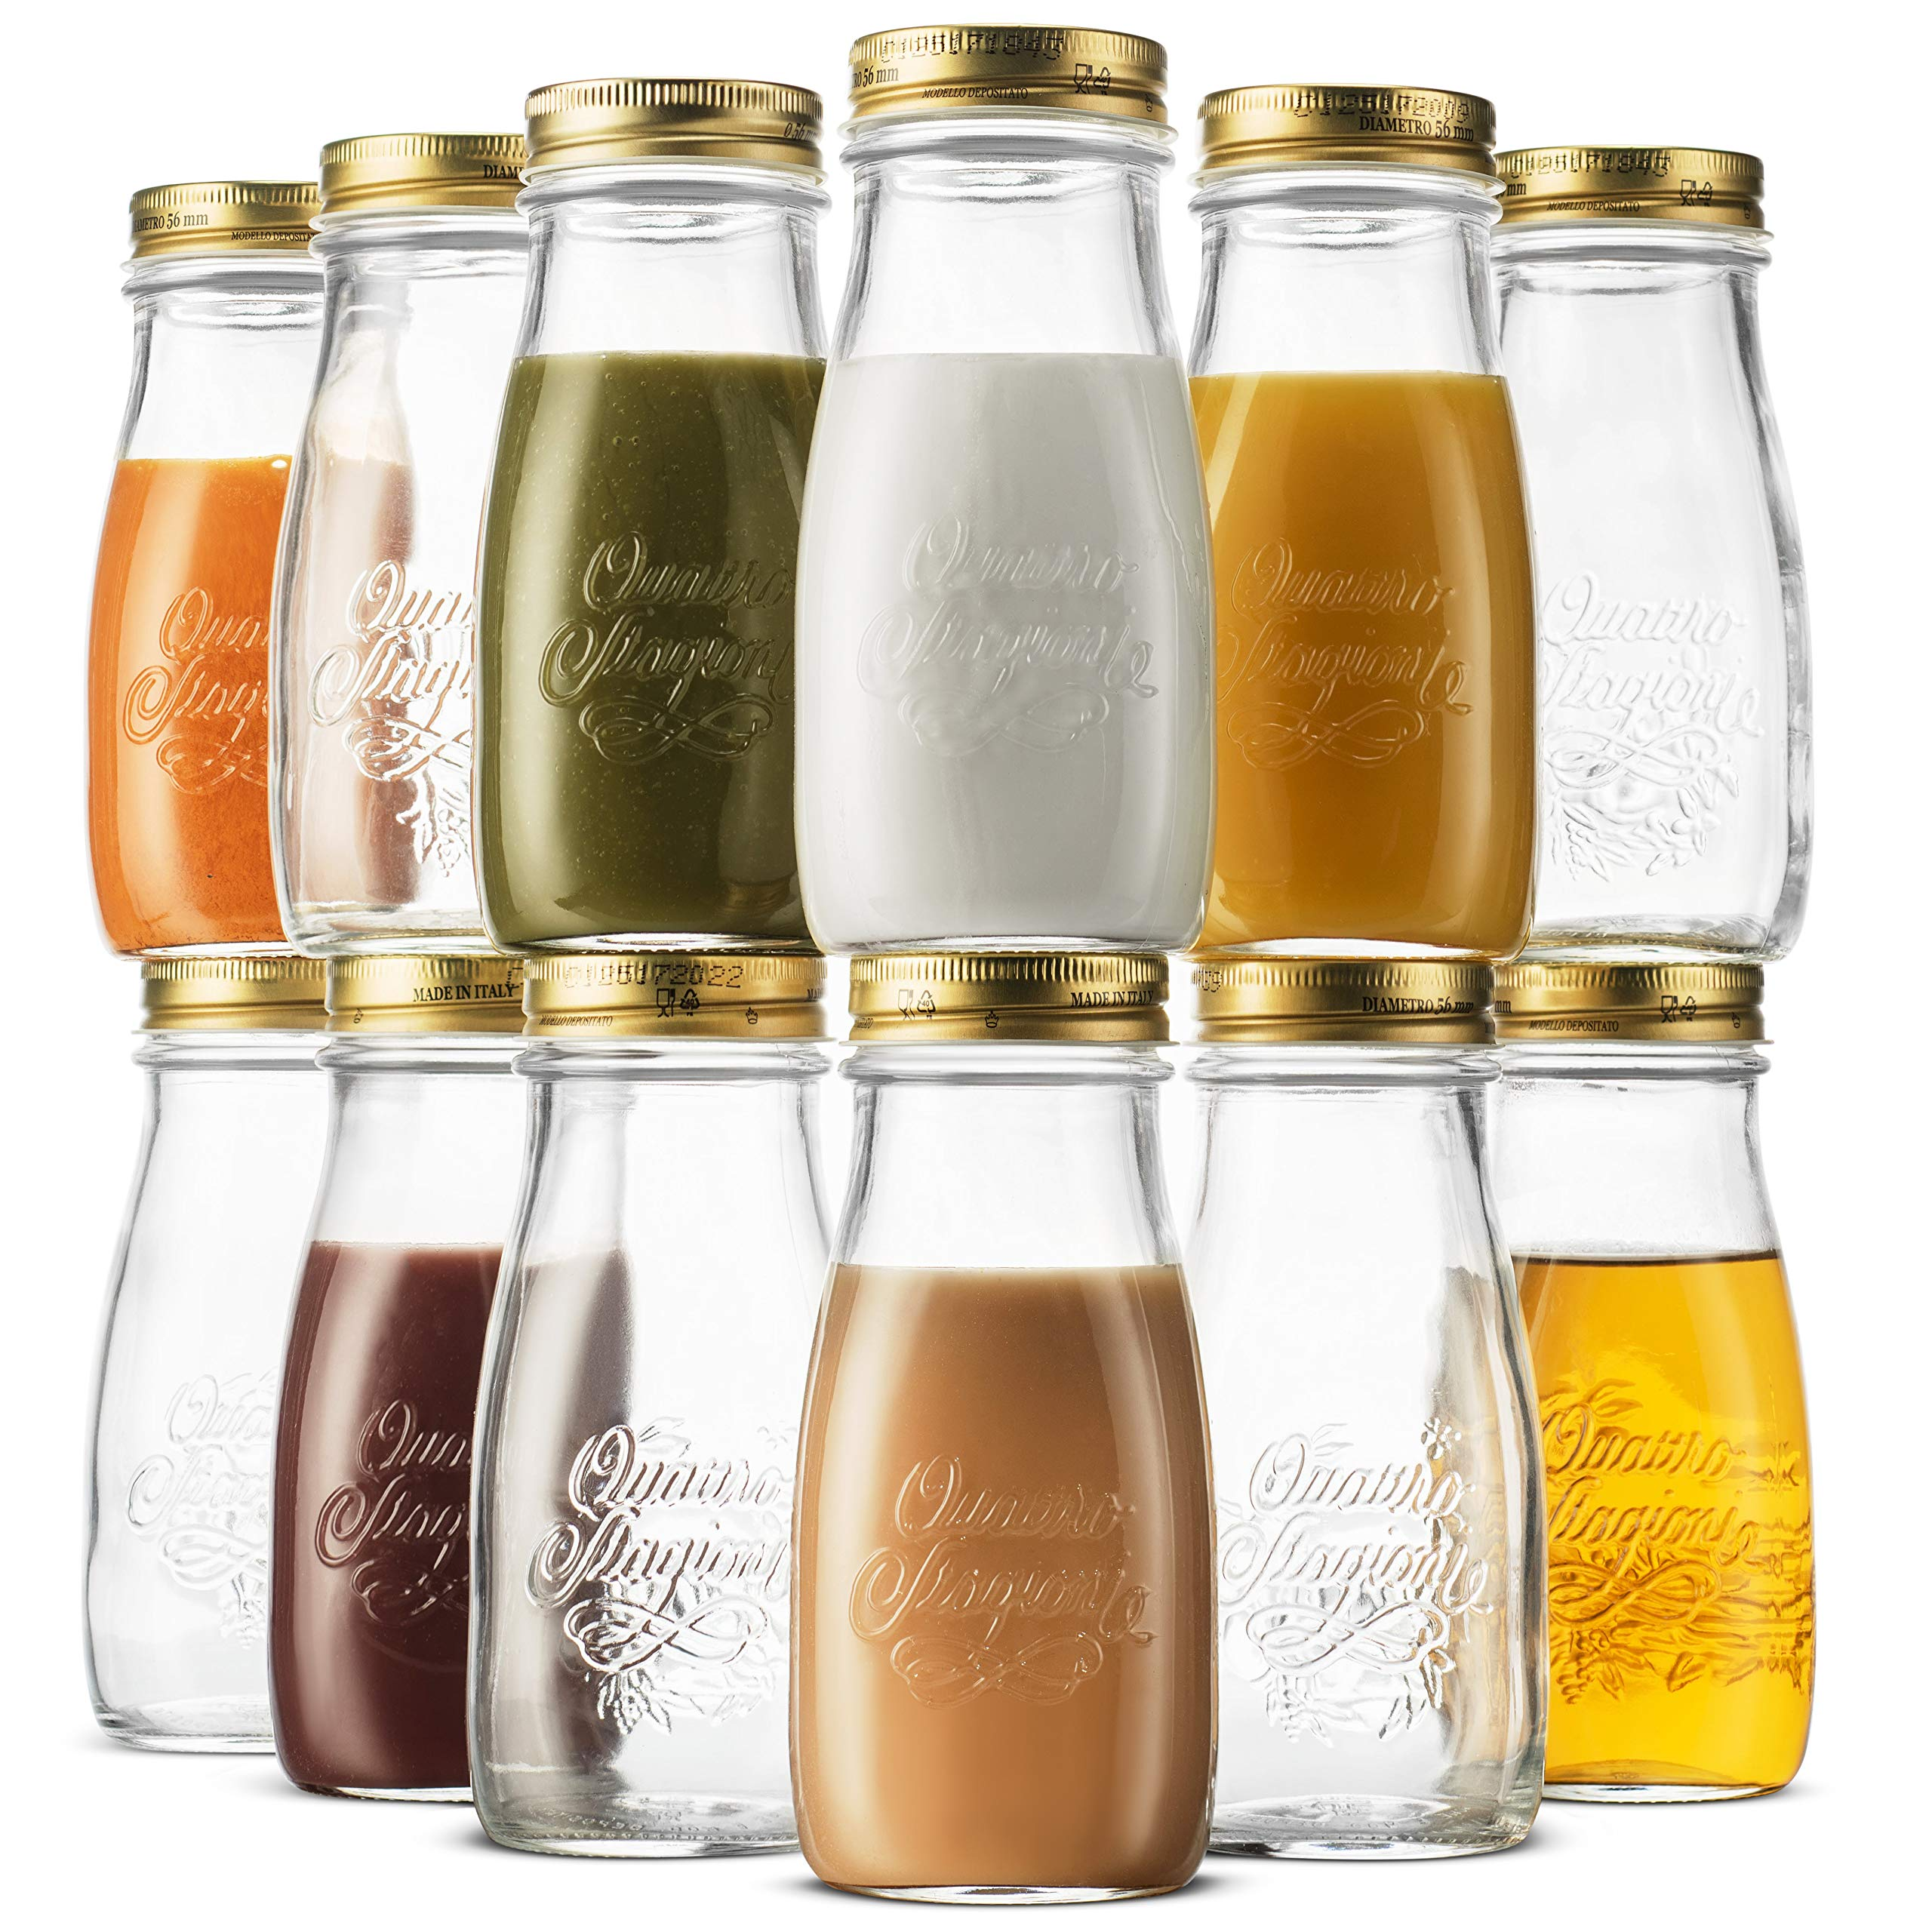 Bormioli Rocco Quattro Stagioni Glass Drinking jar bottle 13½ Ounce (12 Pack) Milk Bottles with Gold Metal Airtight Lids, For Juicing, Smoothies, Homemade Beverages Bottle, Reusable Glass Water Bottle